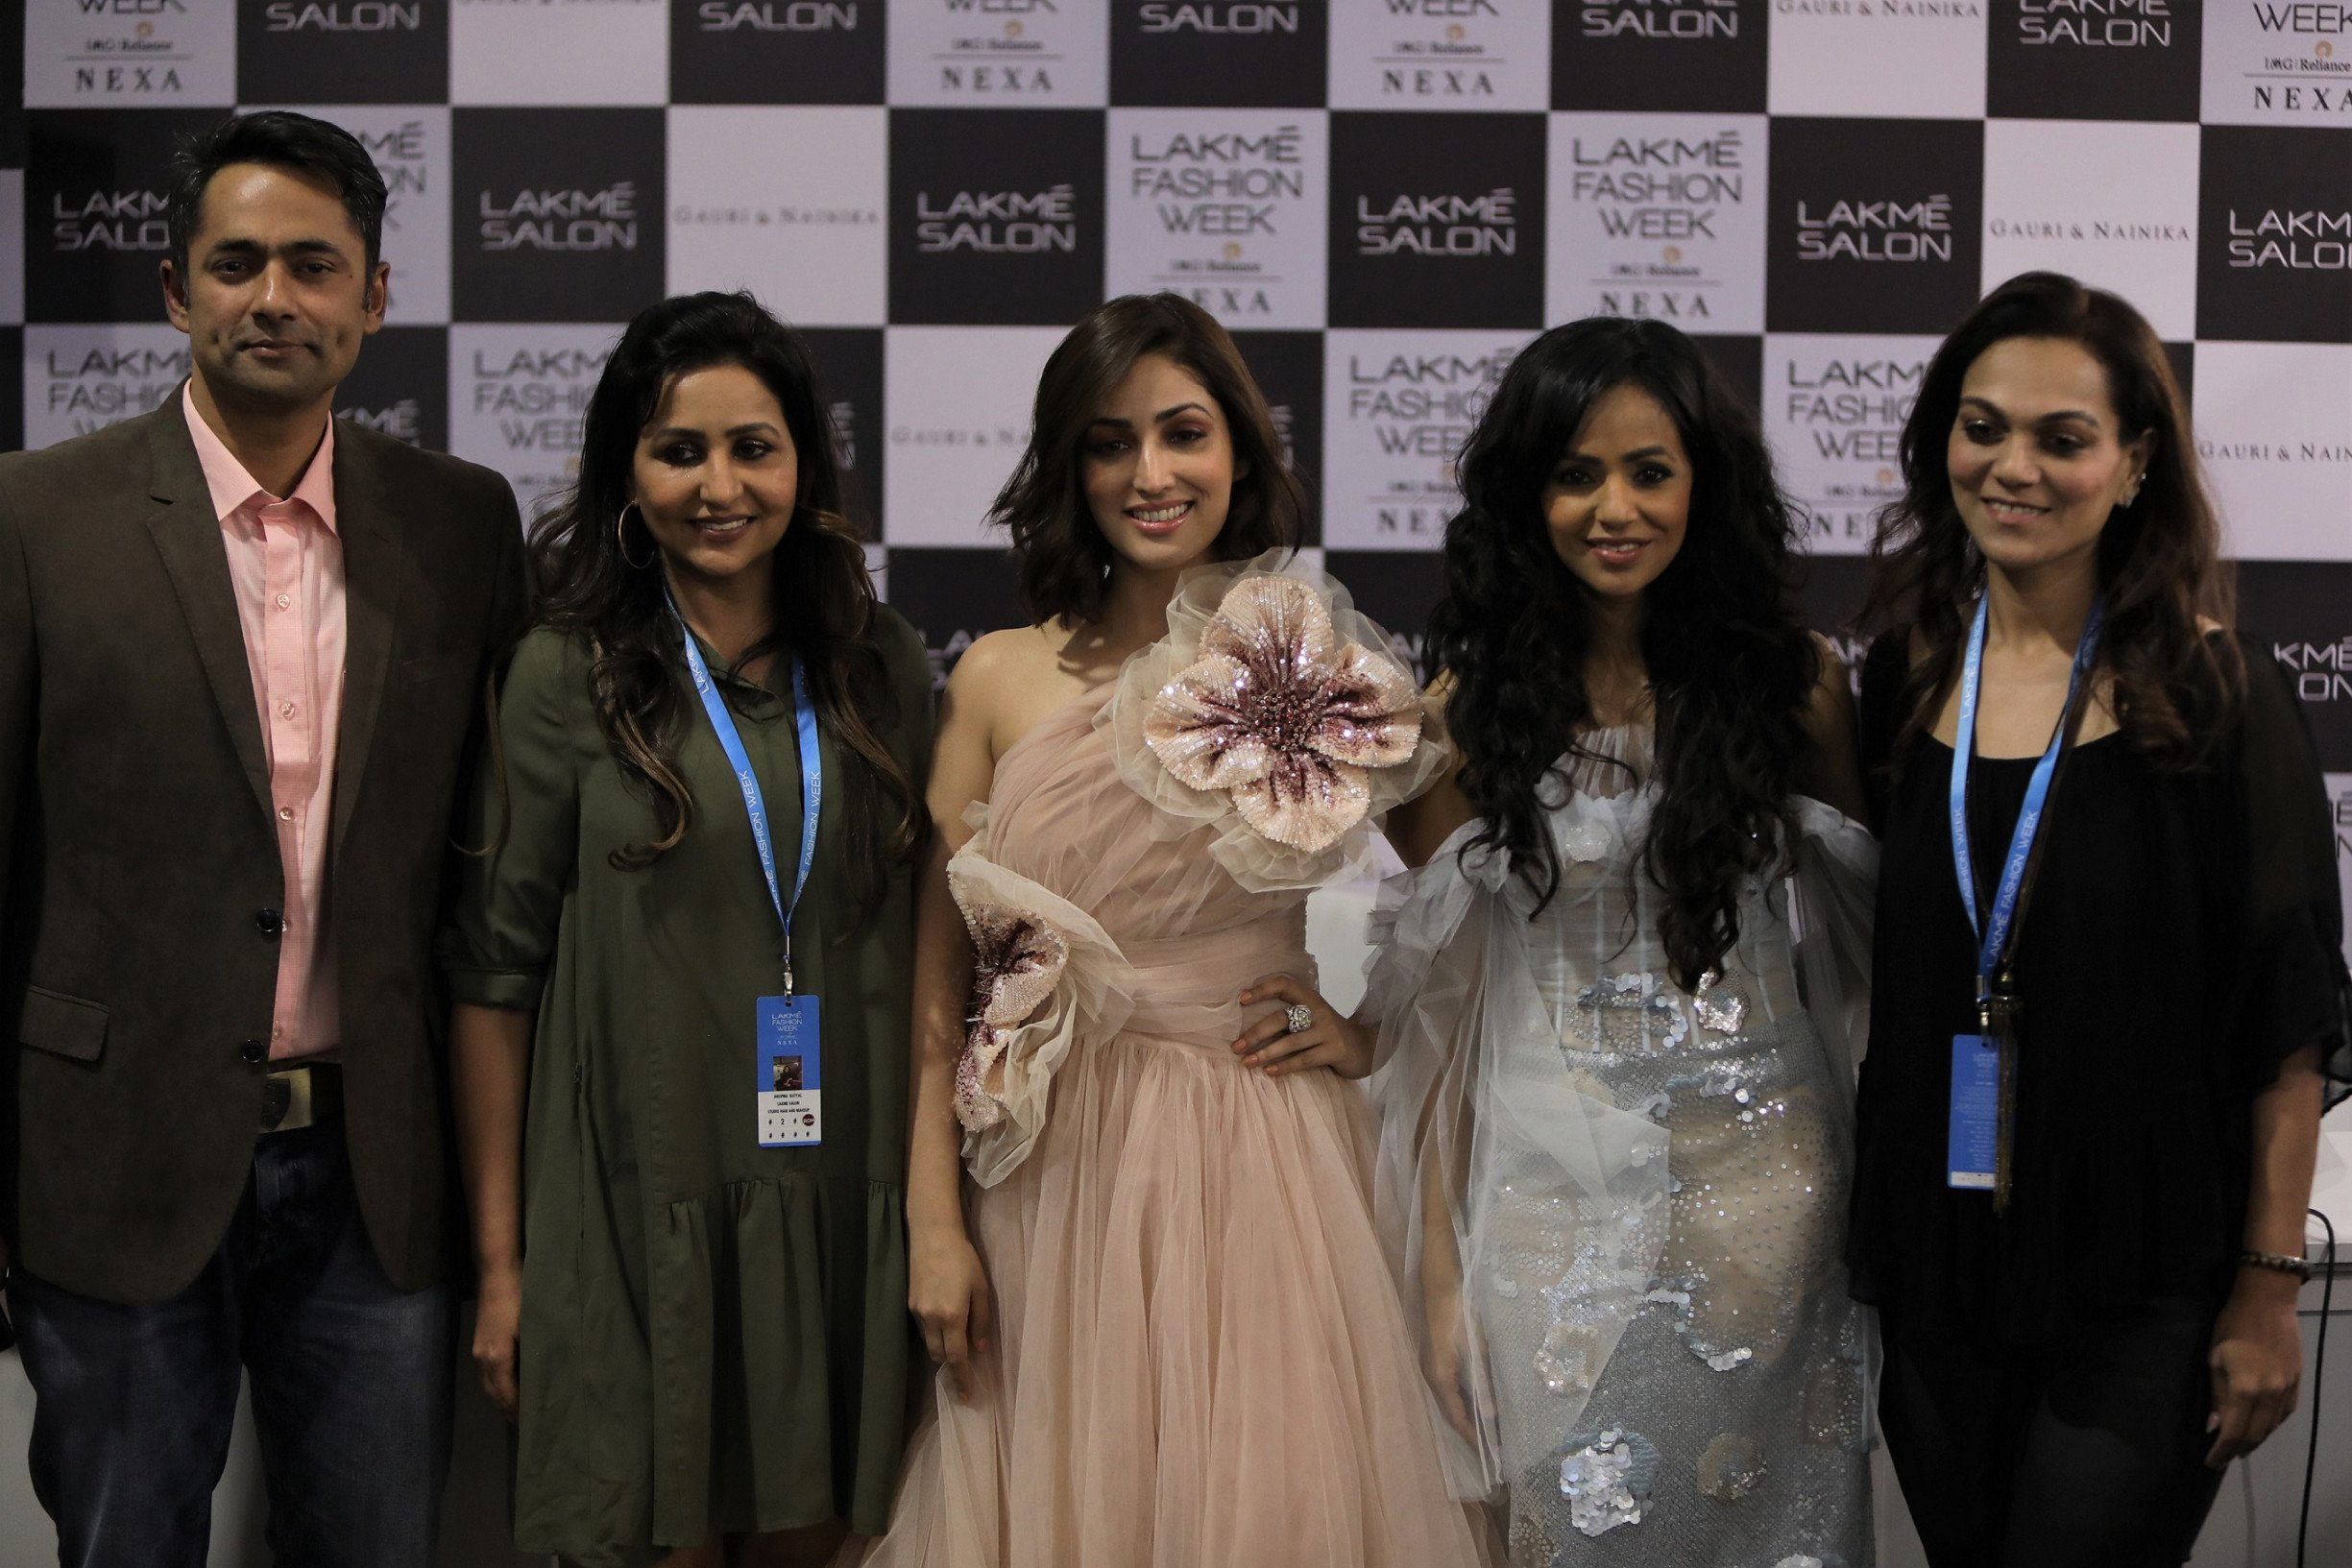 Lakmé Salon and Gauri and Nainika presented 'The Art Of Latte' collection at Lakmé Fashion Week